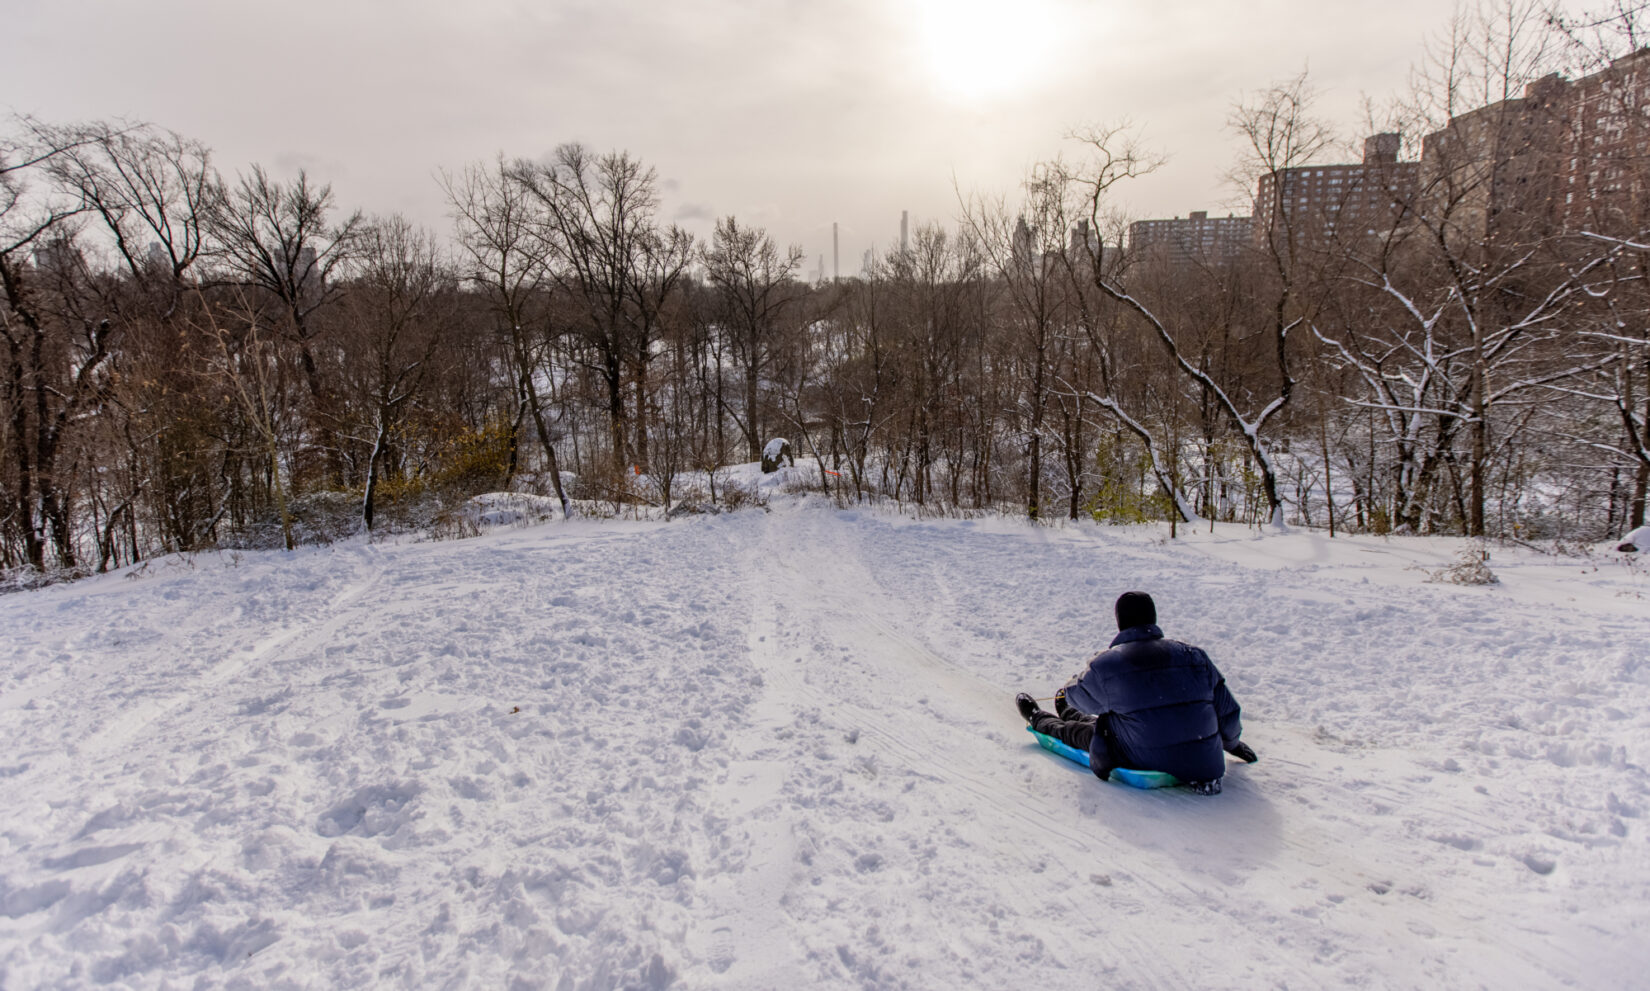 Looking down a snowy slope as a lone sled rider heads for the bottom